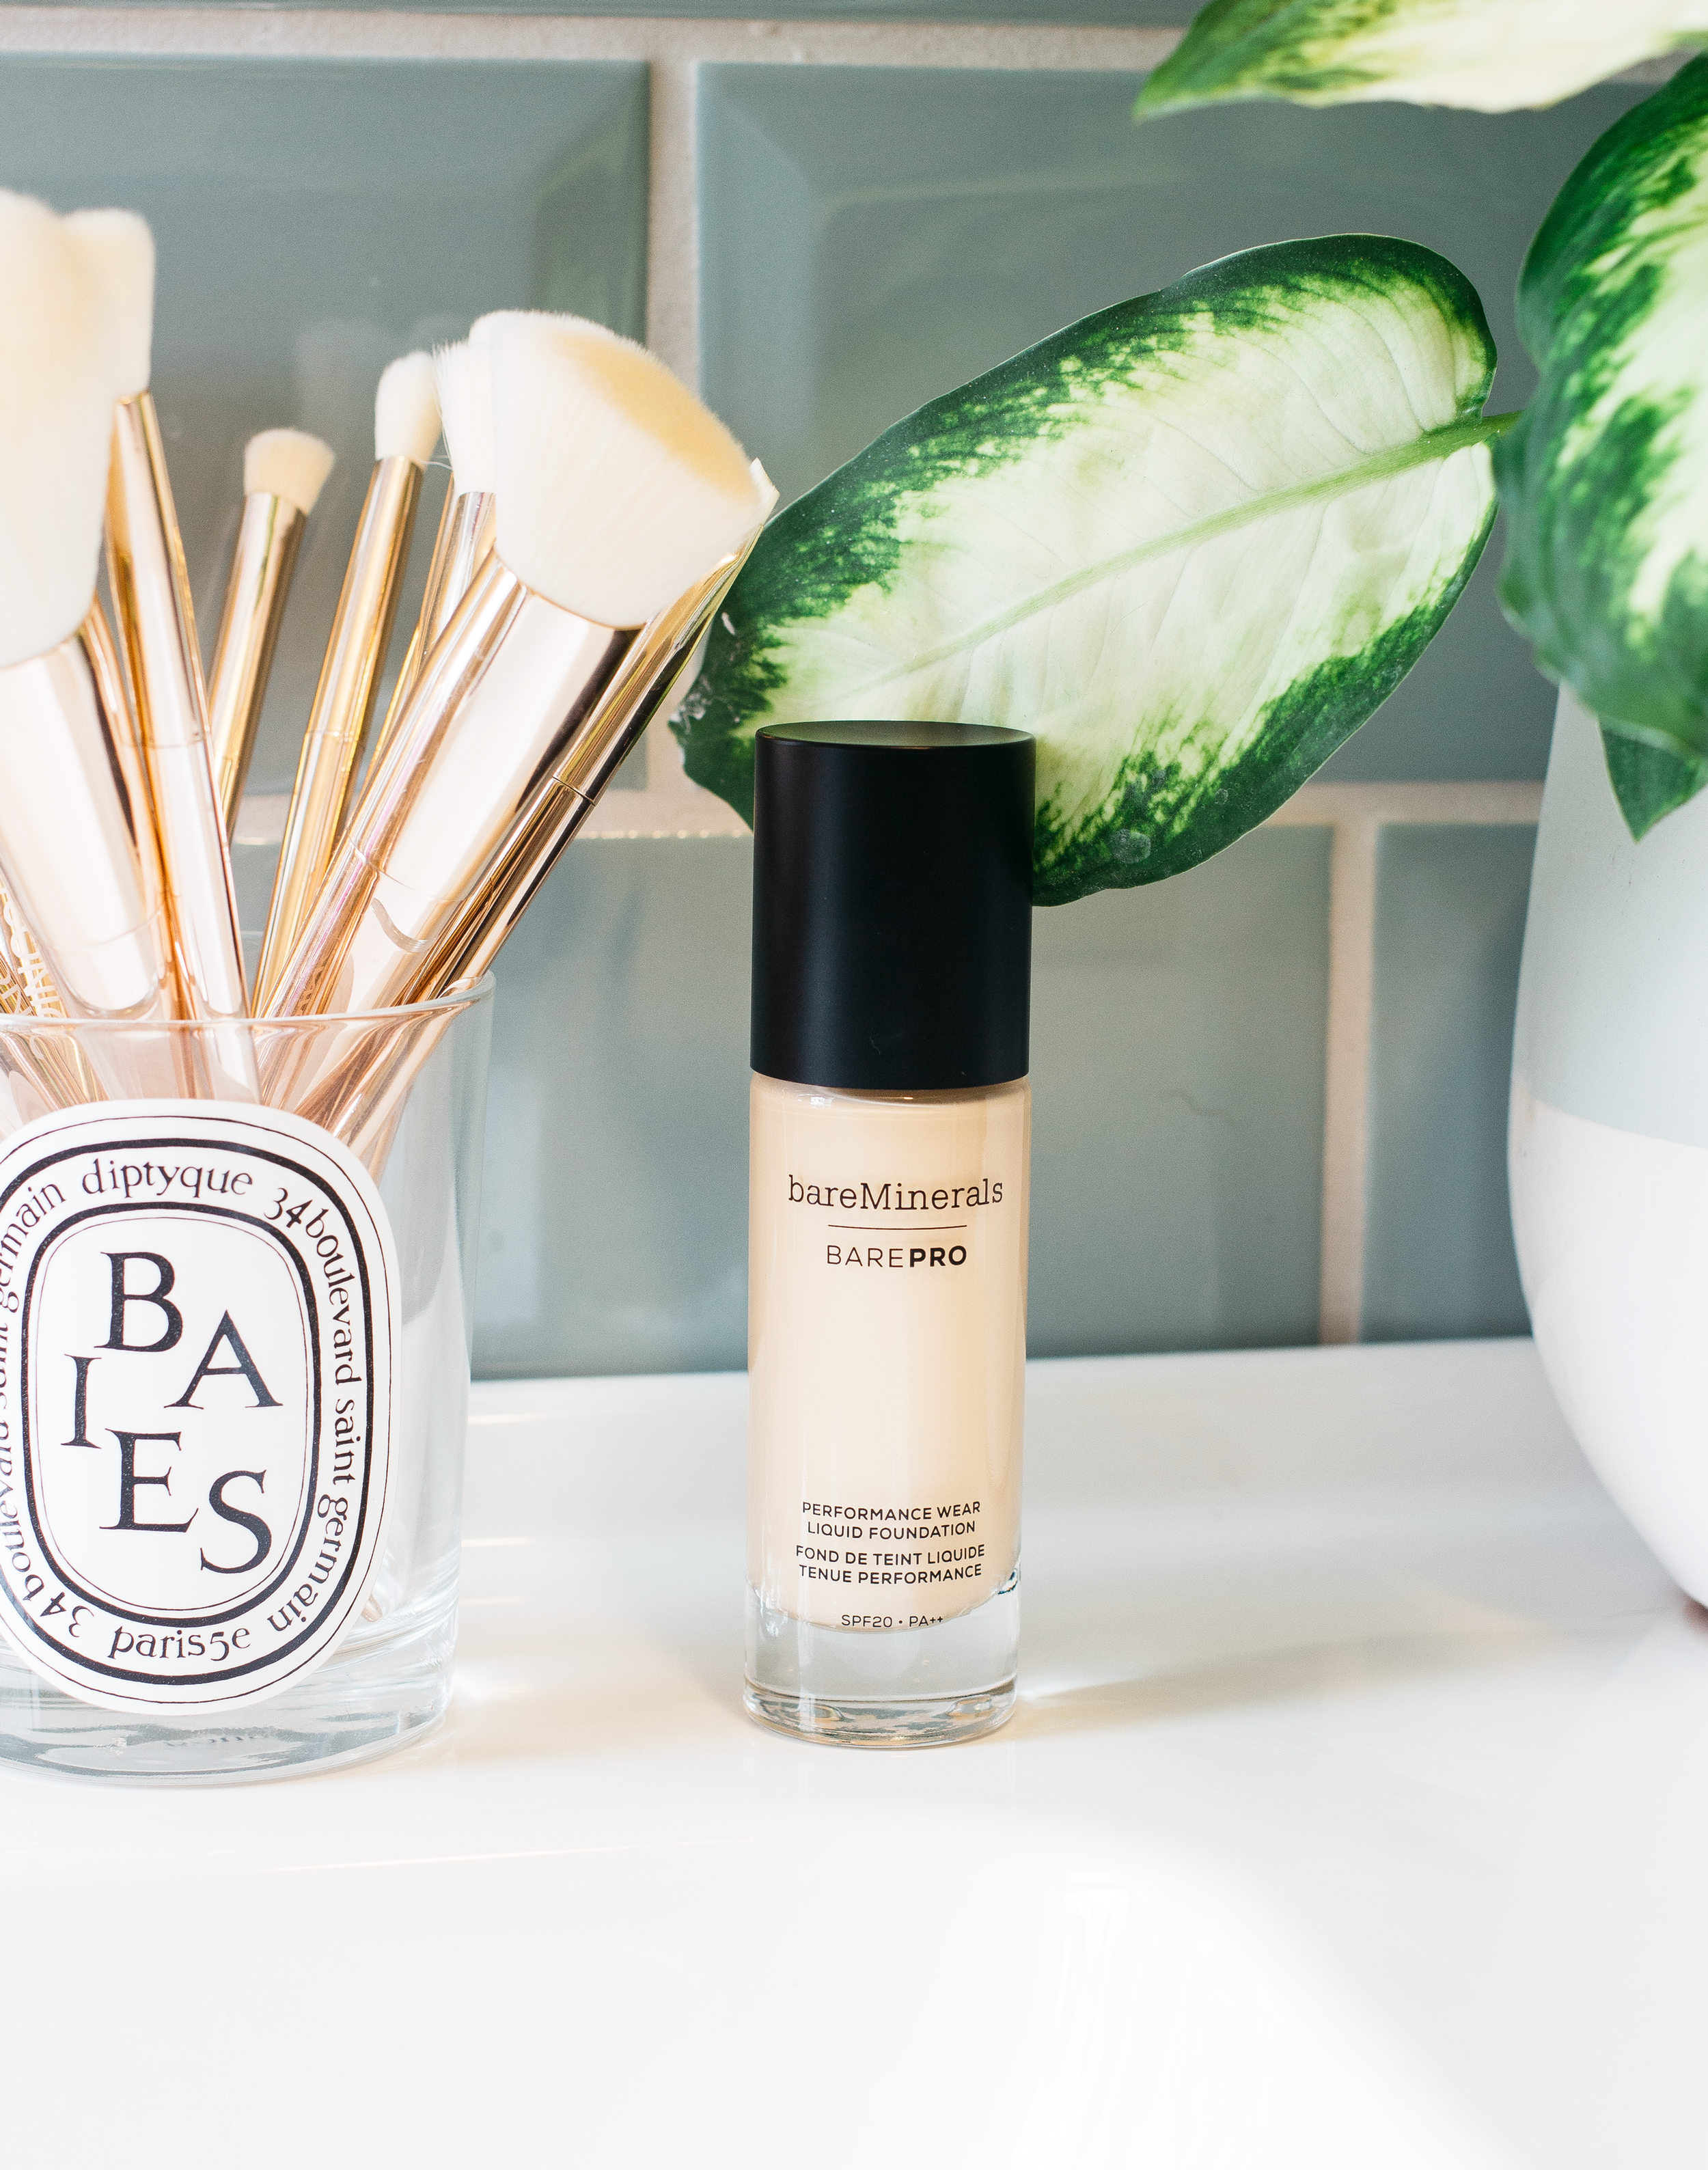 bareminerals barepro foundation* - Another soft matte finish foundation, what can I say they really are the best for photographs! At first, I didn't get on with this base at all but that was all down to my application method, I find a nicely domed brush is what works the best for this and waiting a minute or two before applying any other products so it can settle down. It's very natural and maintains a skinlike finish which doesn't lean in any type of direction, if you've used bases like the L'Oreal True Match then it's very similar to that but fuller coverage. It doesn't budge or transfer which is something I look for in my bases as a glasses wearer there is nothing worse than half of your foundation rubbing off around your frames and it doesn't crease either. It wears beautifully throughout the day and even when it does start to wear (we're talking well into the evening) then it does so evenly so you're not left looking patchy in the evening.